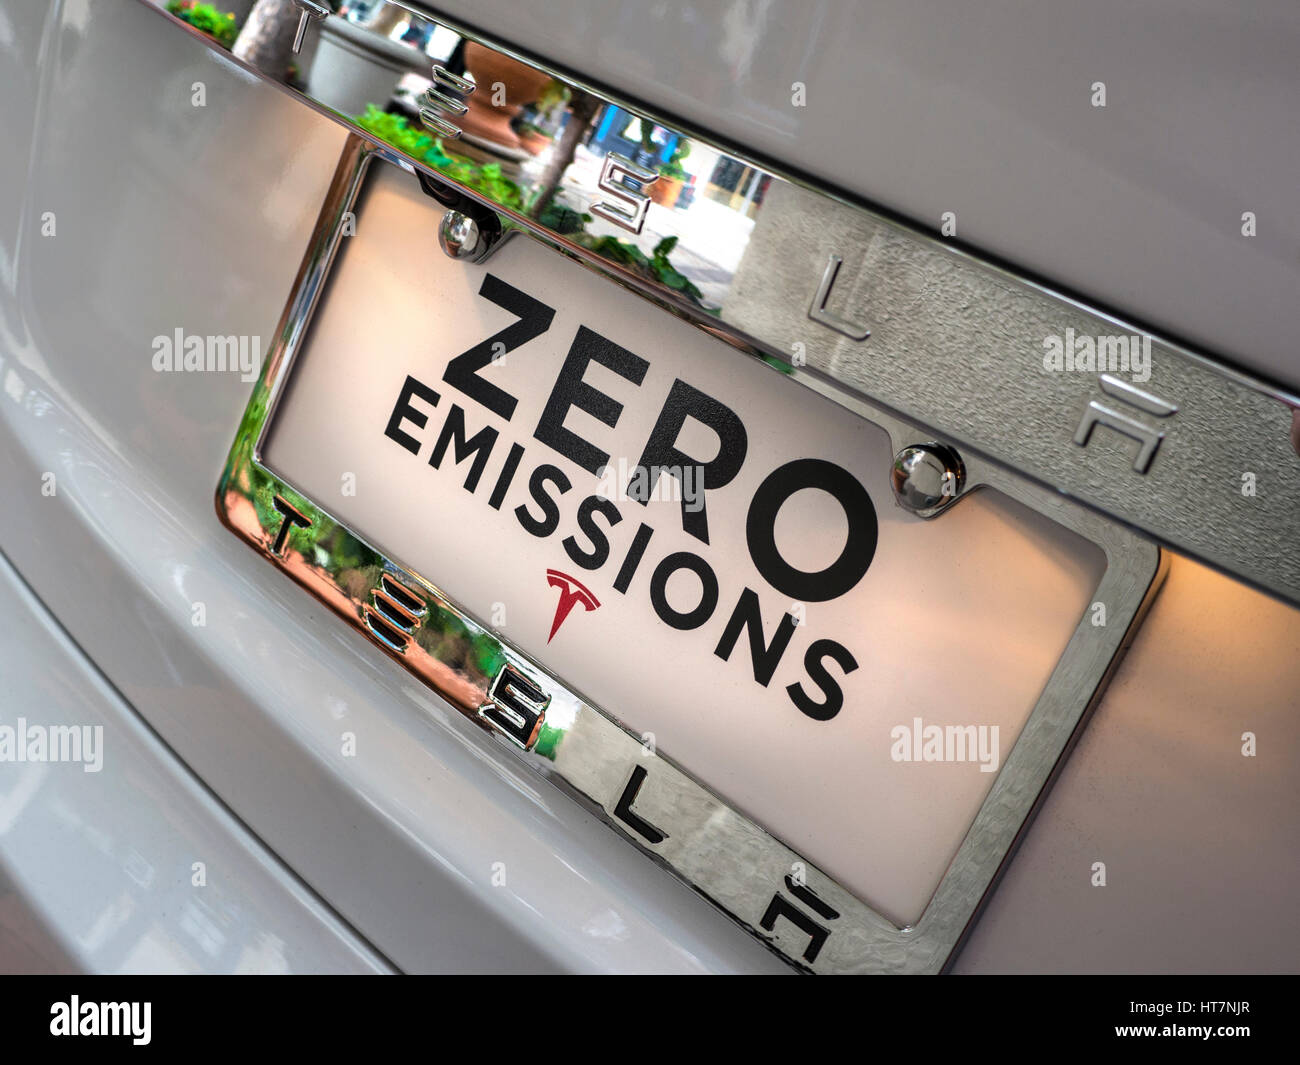 Zero emissions display plate on latest Tesla Model S an all electric powered stylish sports car with 300 miles range - Stock Image